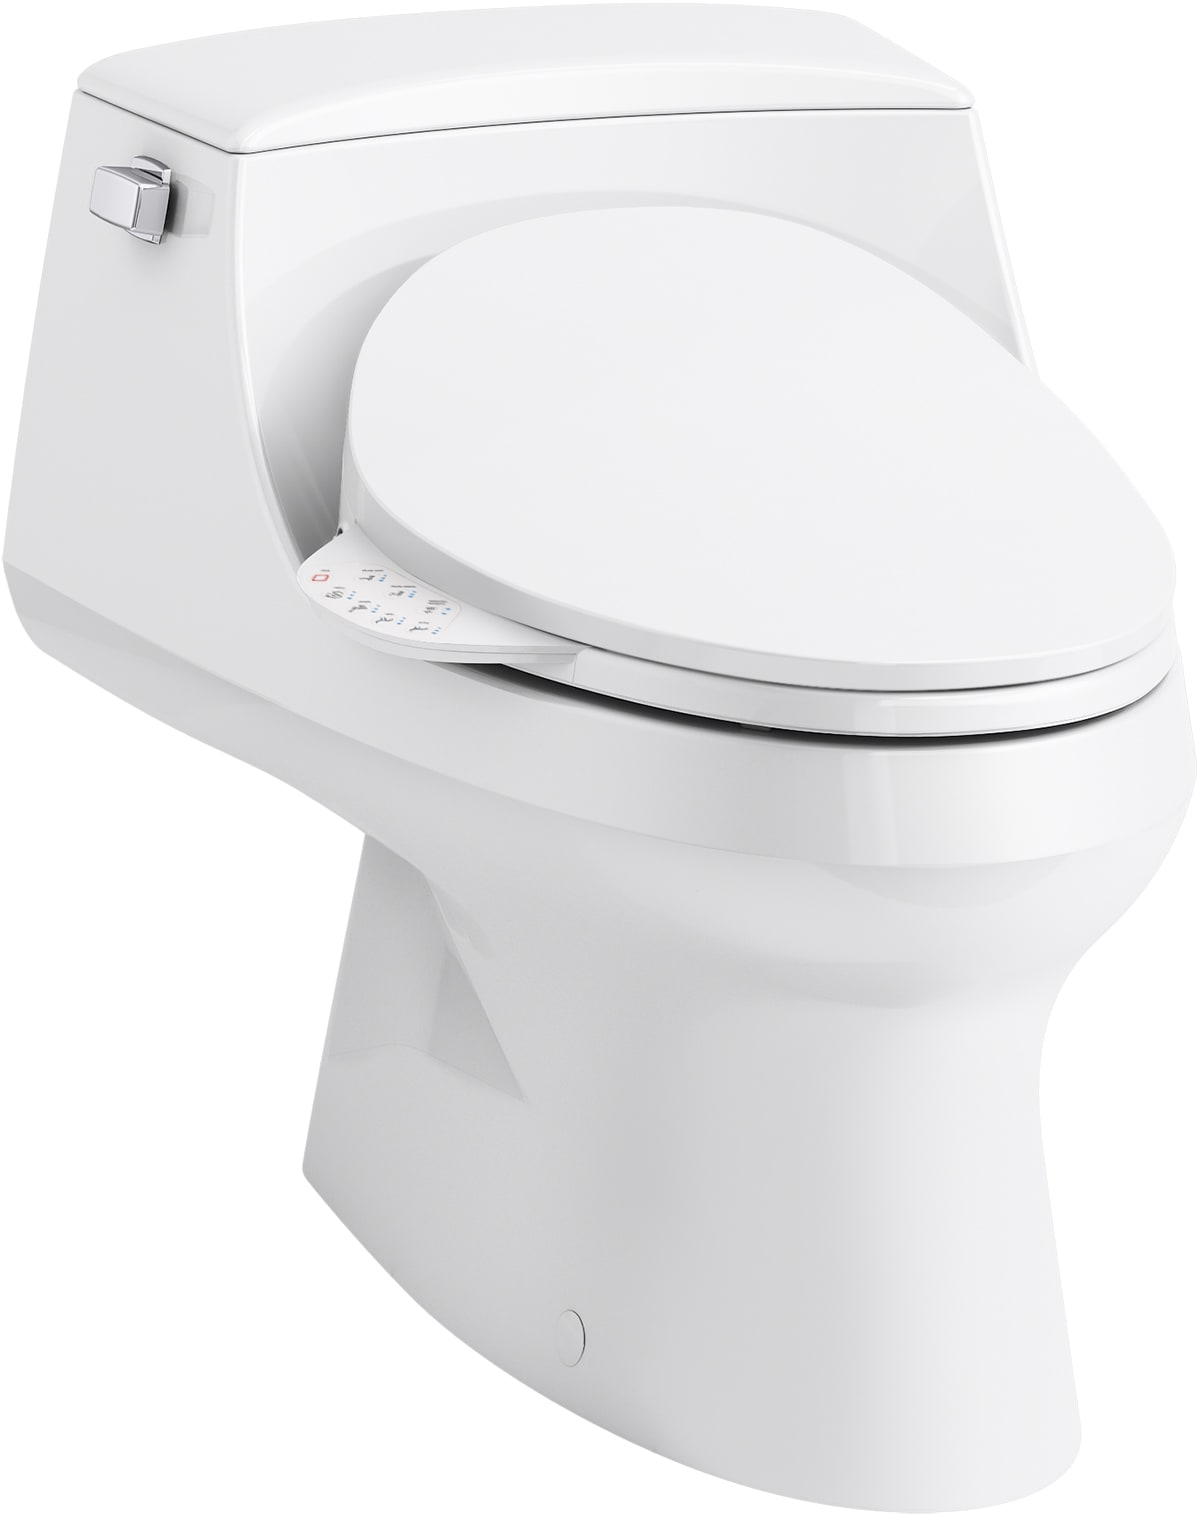 Kohler K 3722 4108 0 White San Raphael 1 Piece 1 28 Gpf Elongated Toilet With C3 230 Electric Bidet Toilet Seat Faucet Com